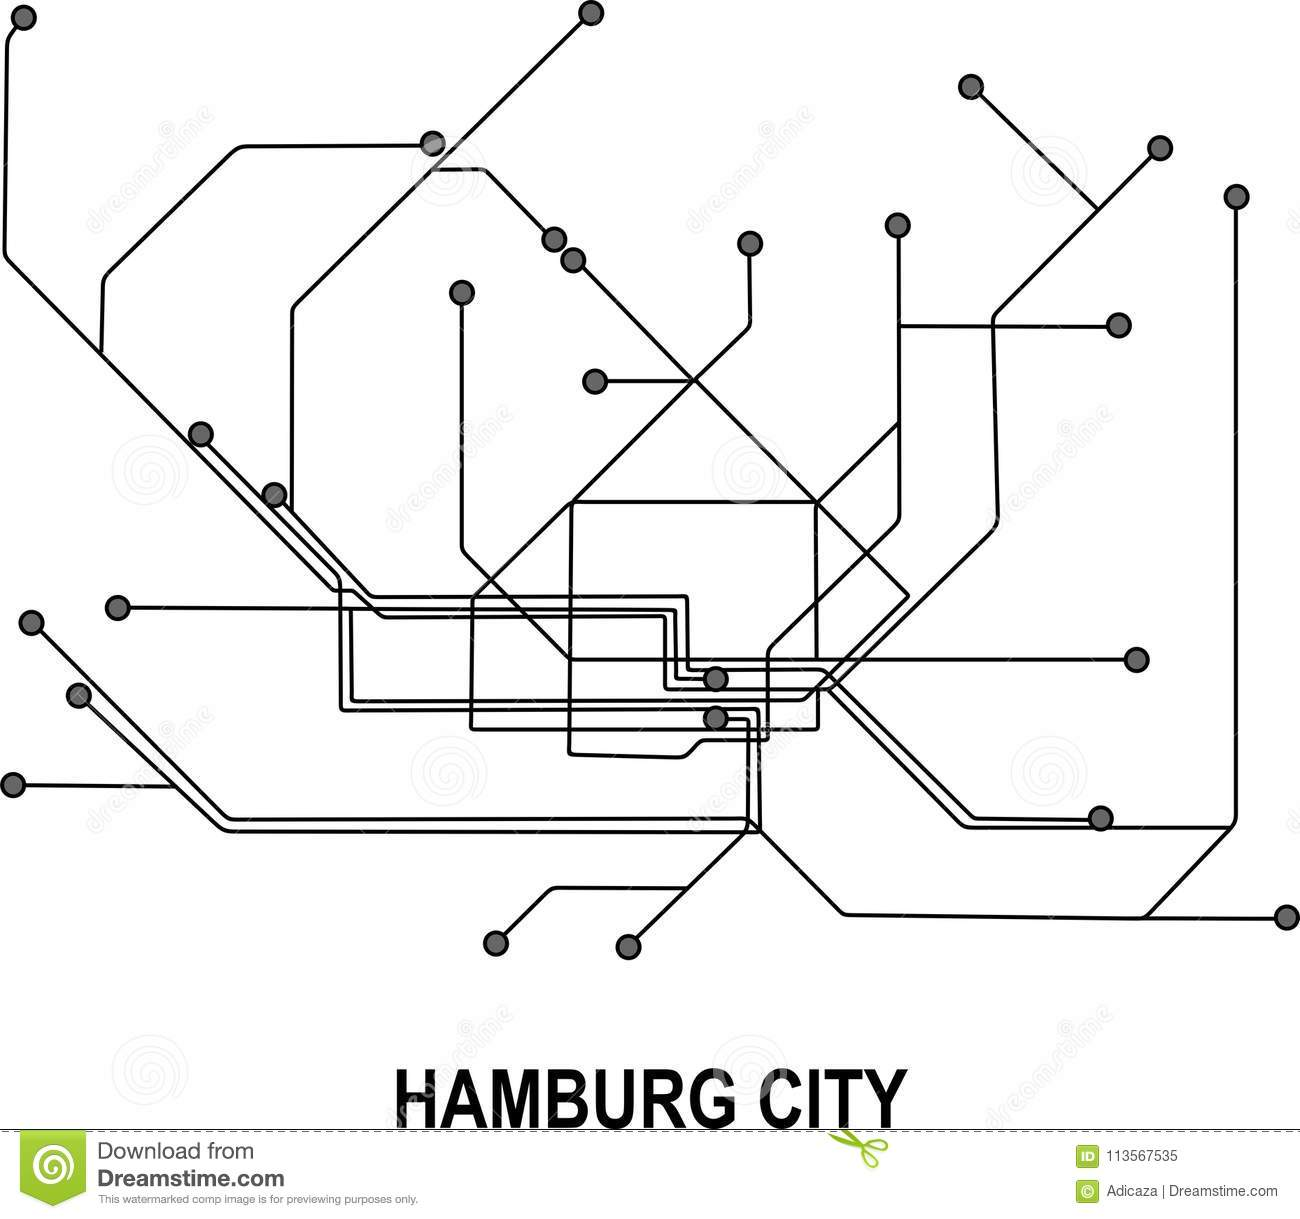 Hamburg Subway Map.Hamburg City Map Stock Vector Illustration Of Hamburg 113567535